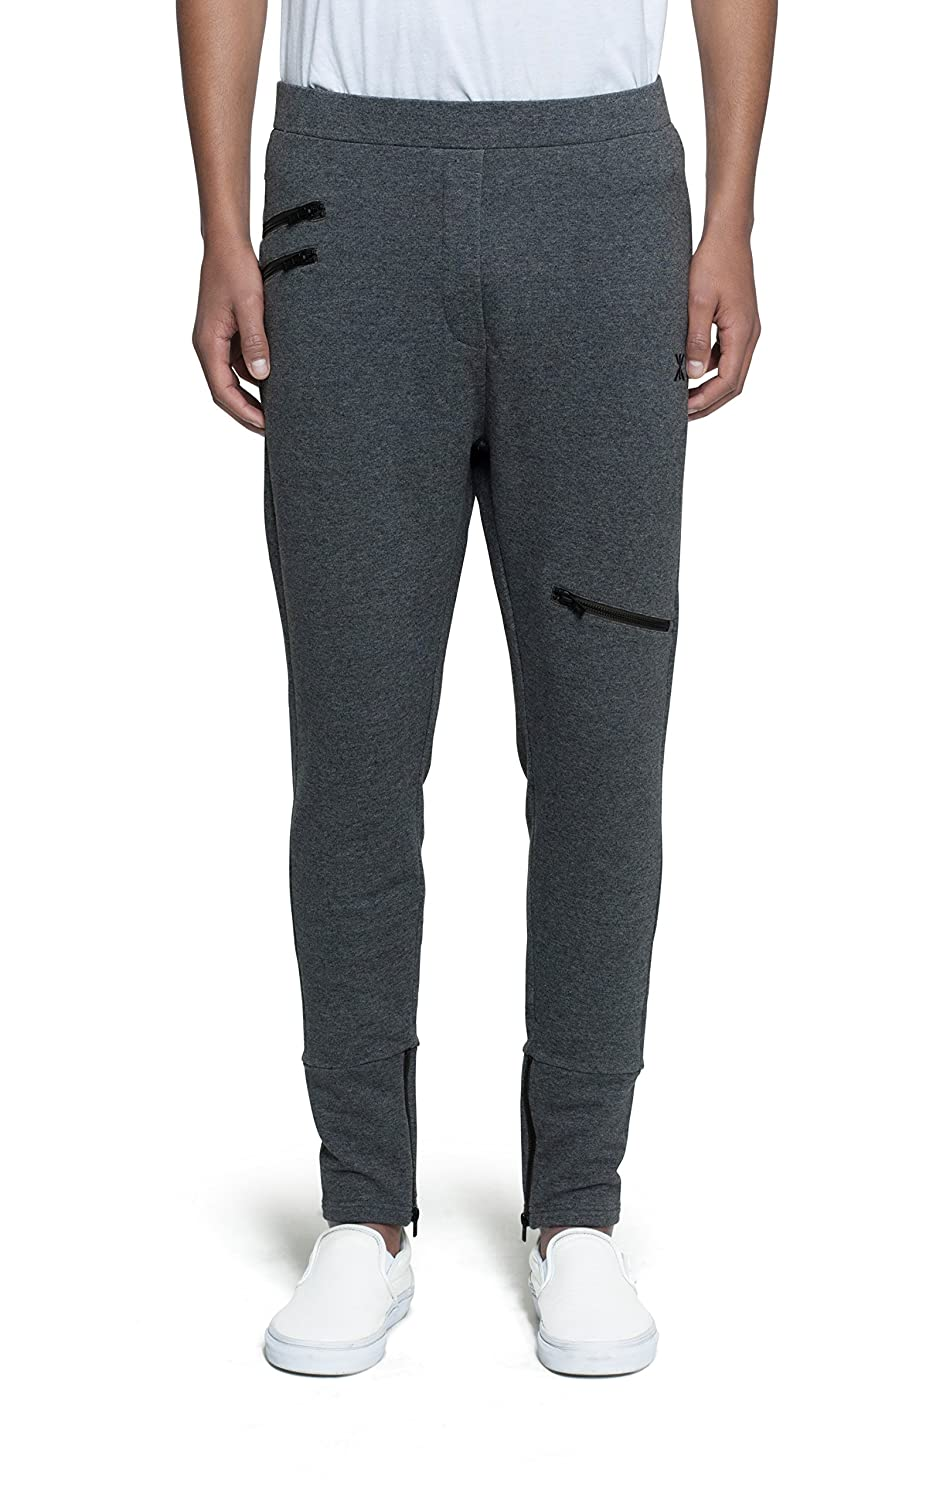 OnePiece Unisex Sporthose Pant Out OnePiece Jump In AS (Apparel) P-PA16102